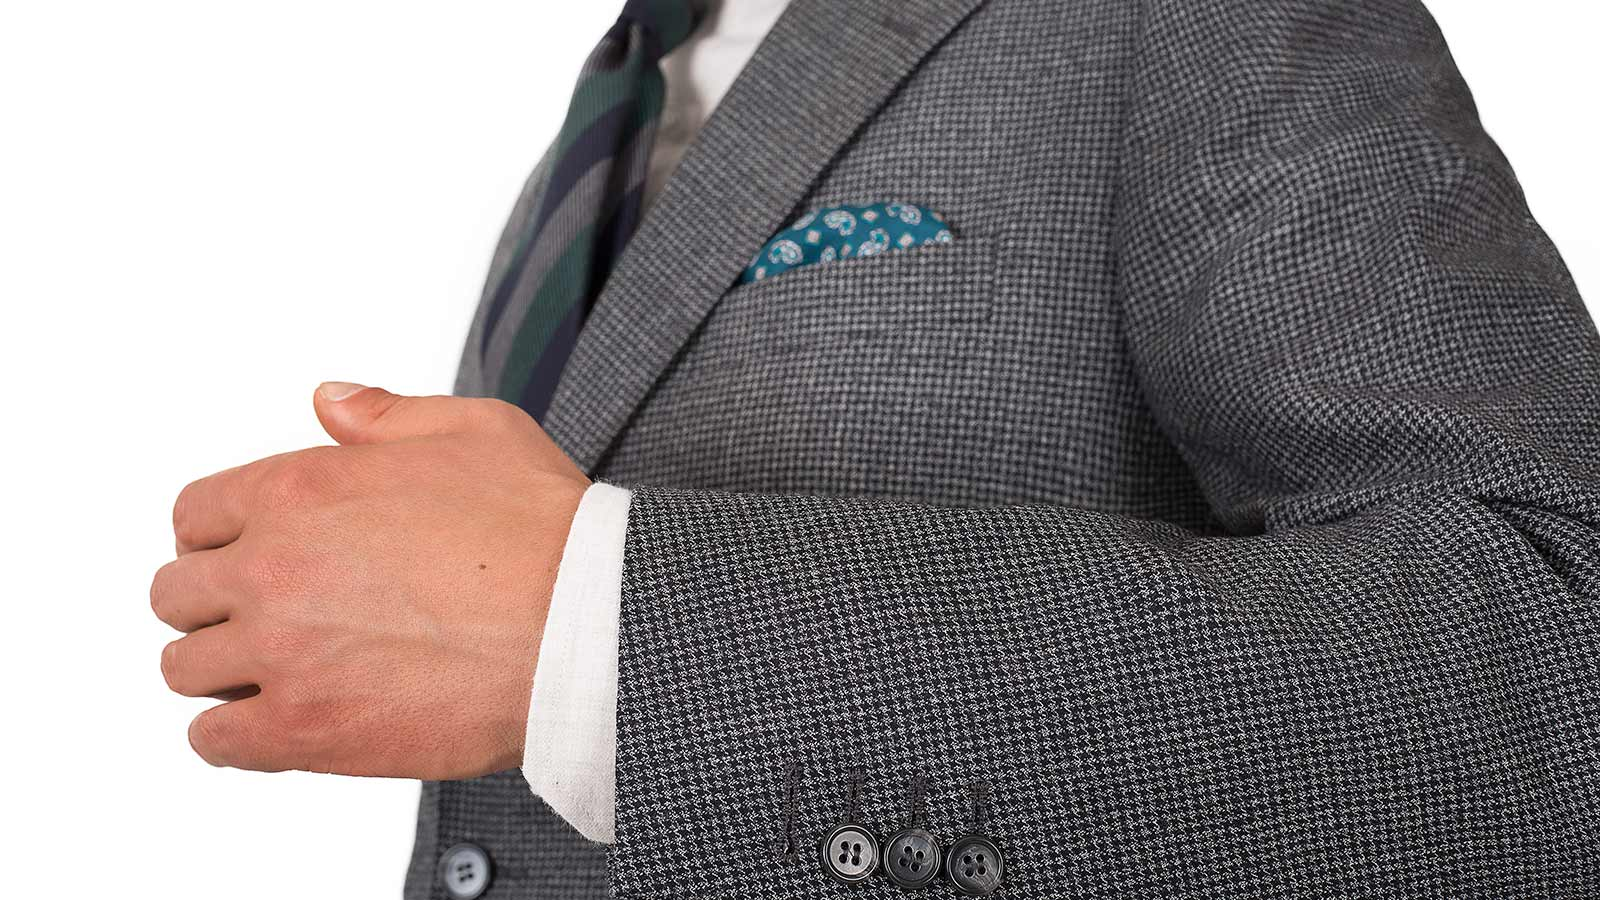 Dark Grey Houndstooth 3 Piece Suit - slider image 1